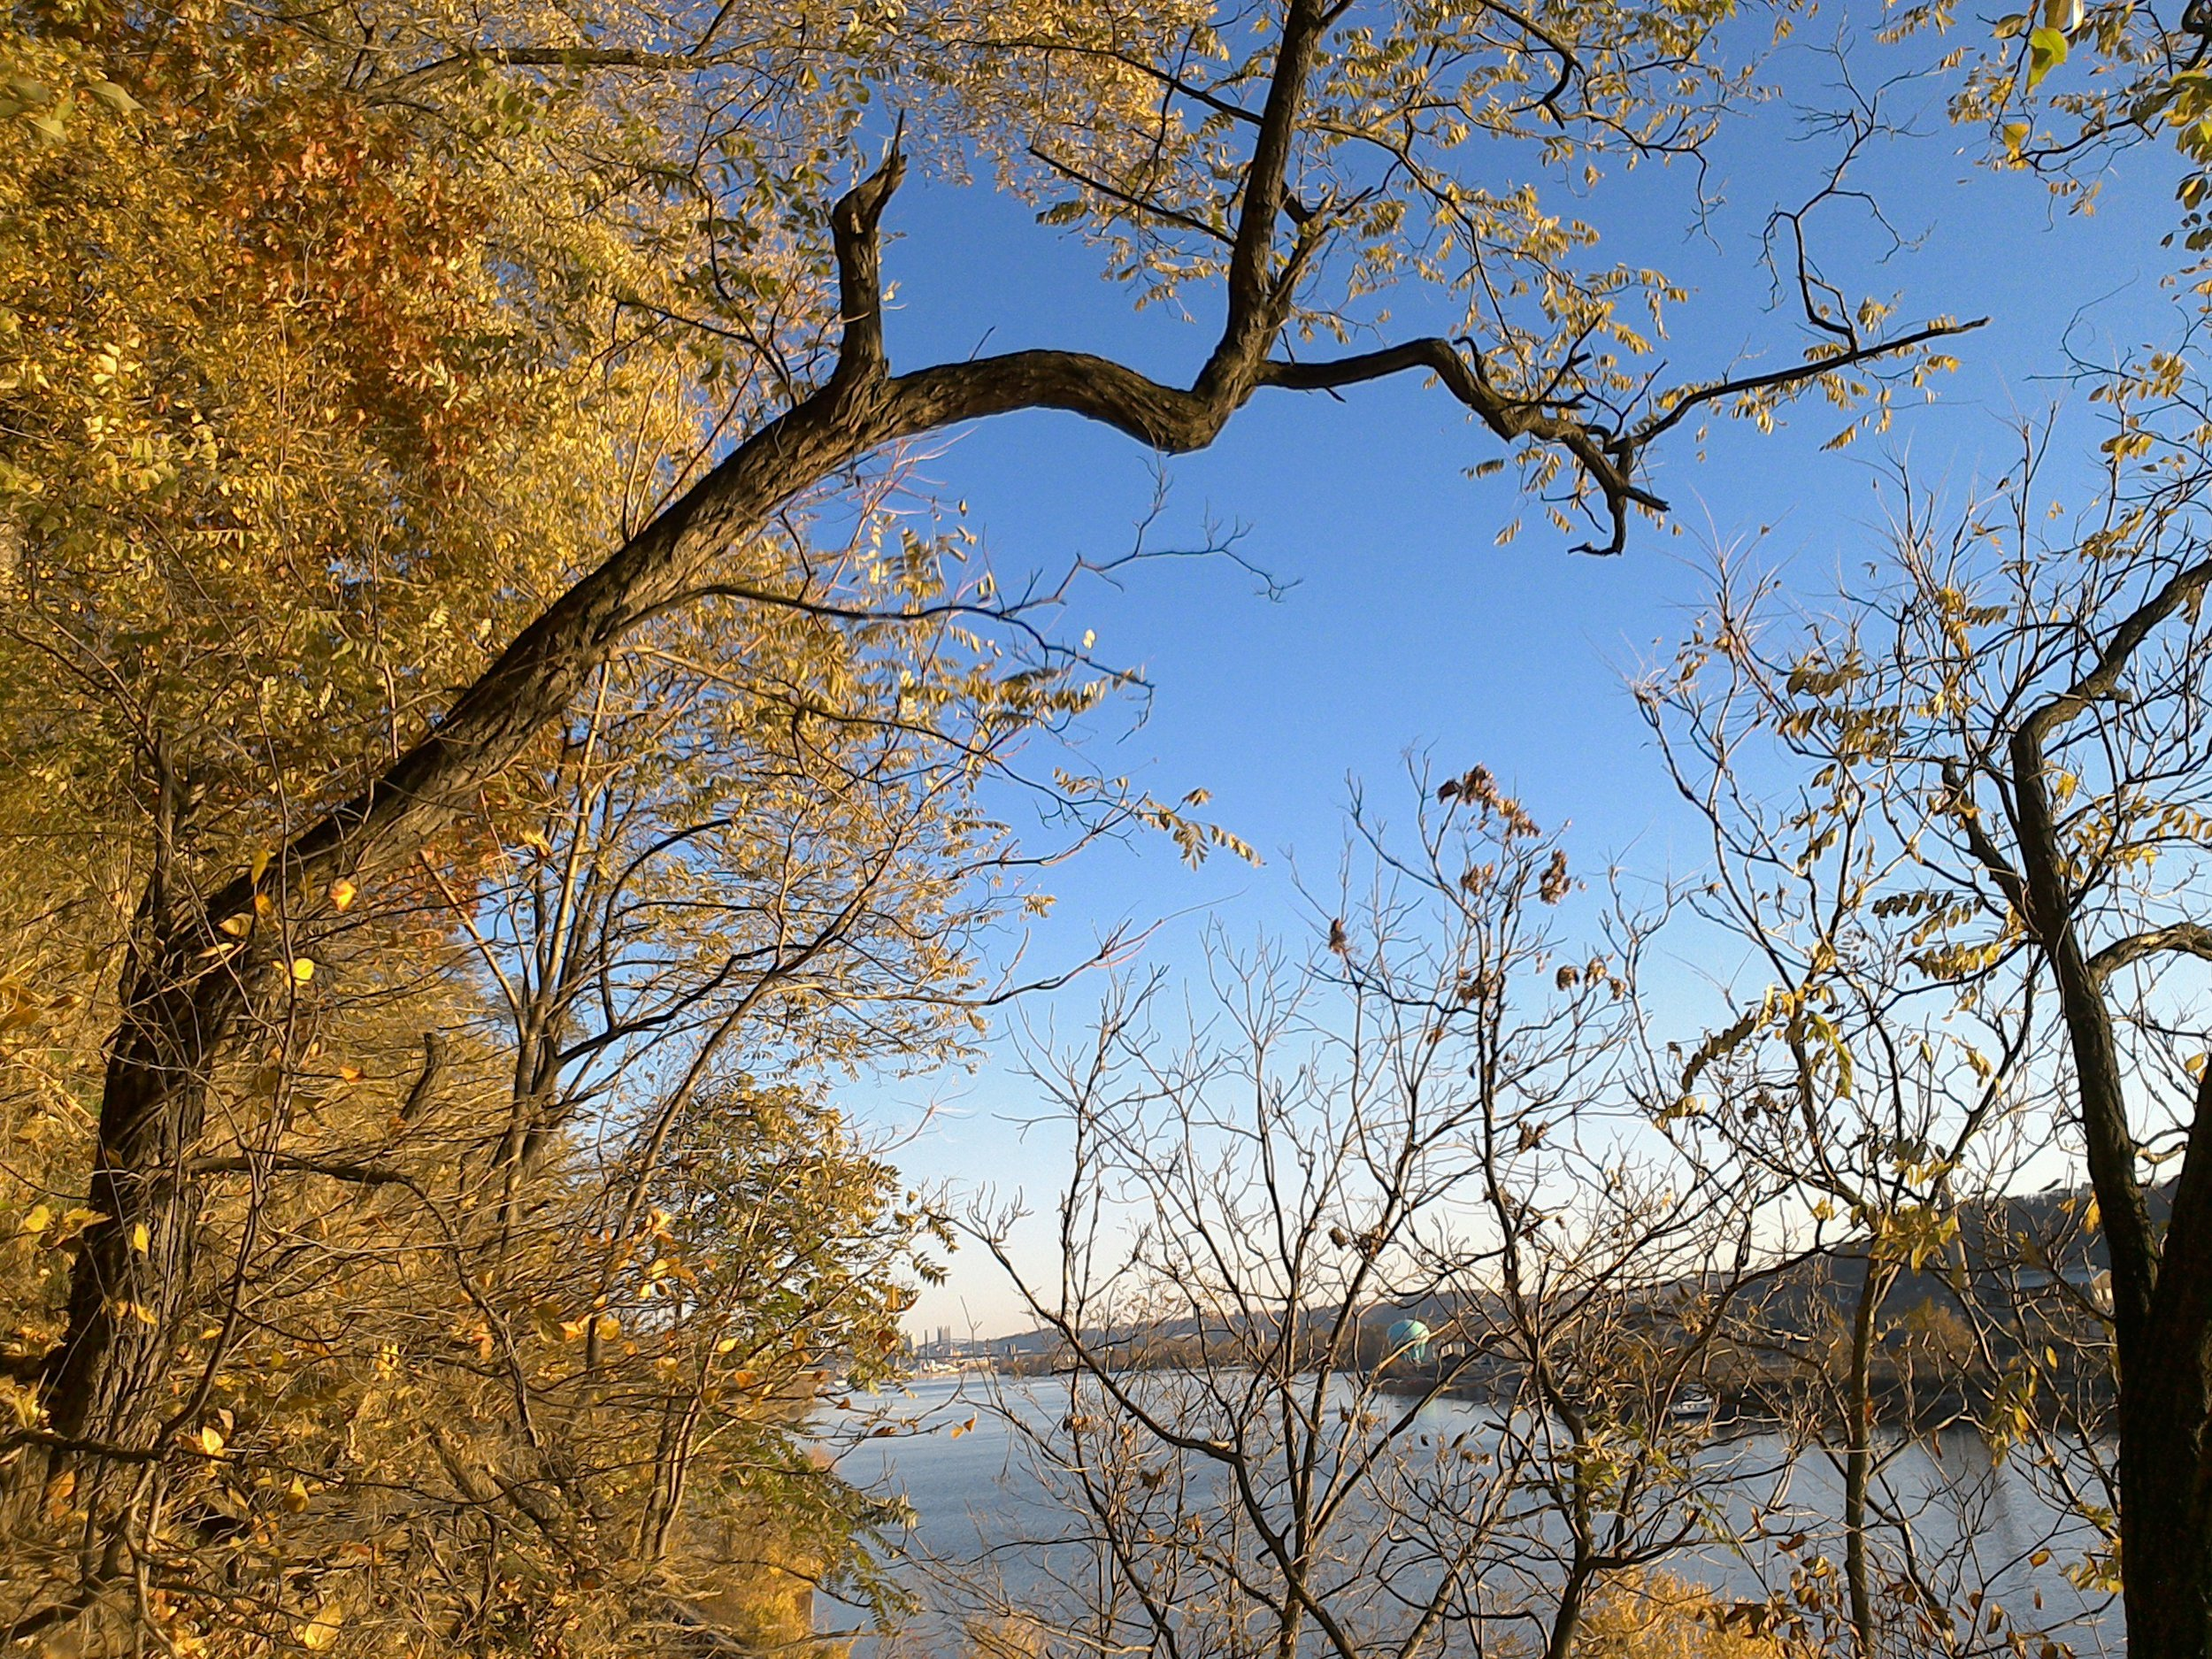 104 OB5 ohio river near Pittsburgh showing much still undeveloped forest public domain.jpg